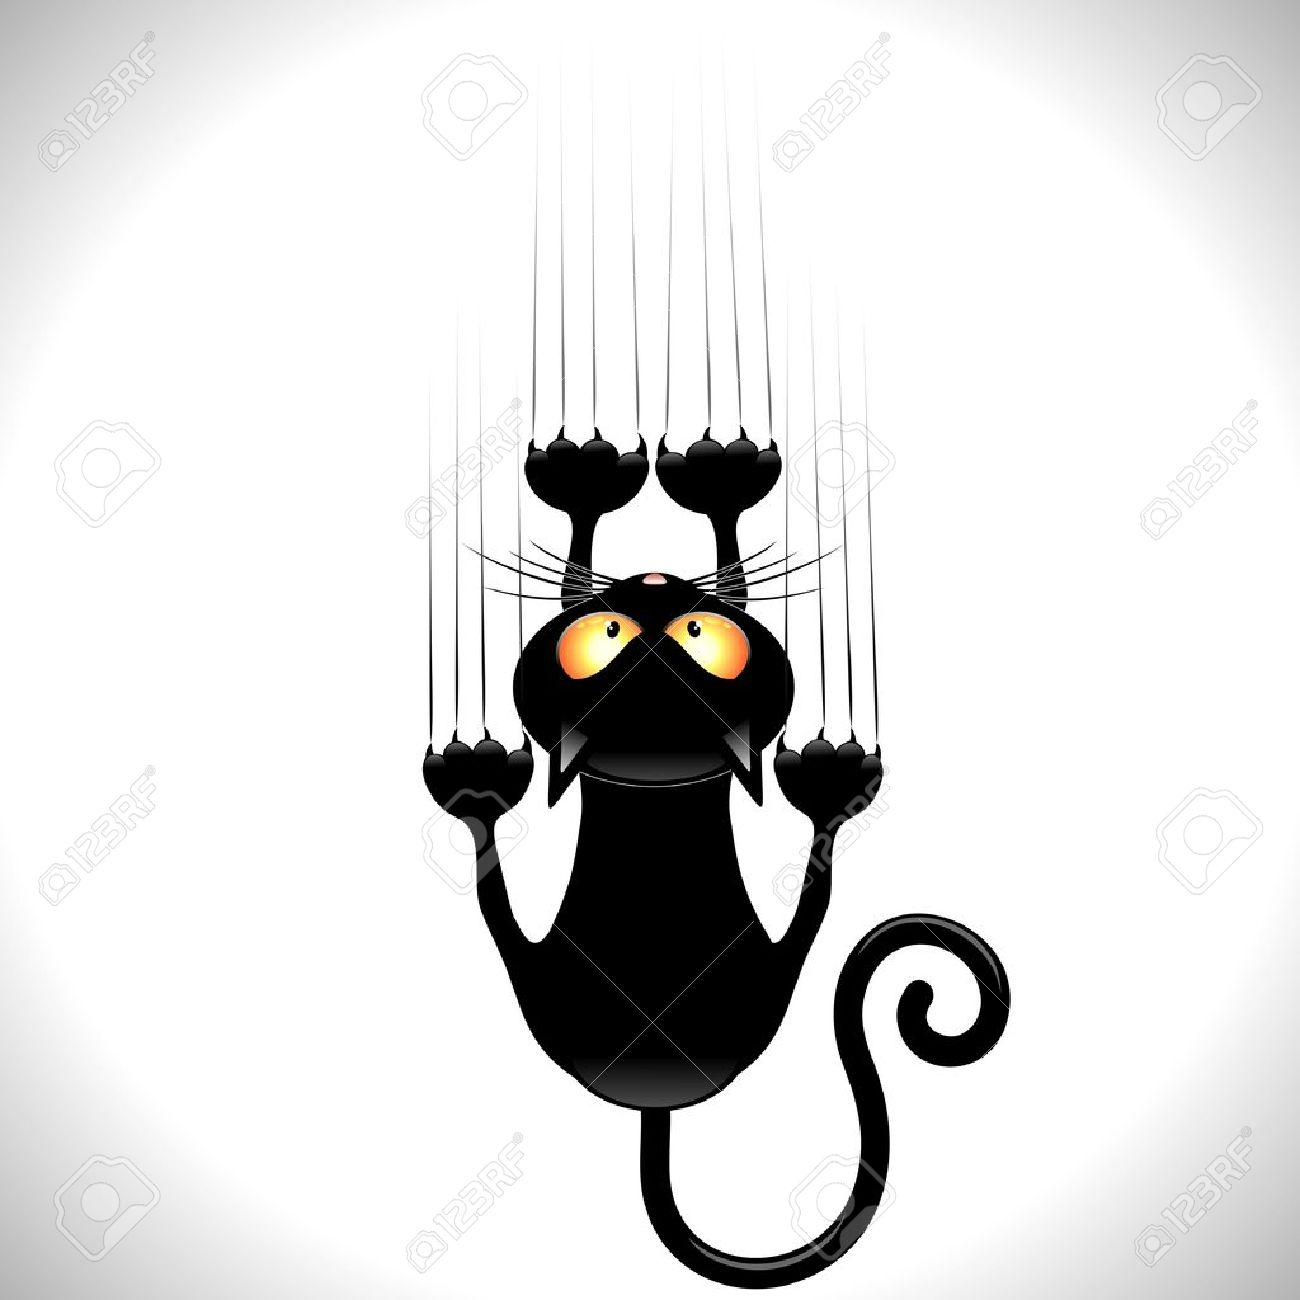 Black Cartoon Scratching Wall Stock Vector - 20639819